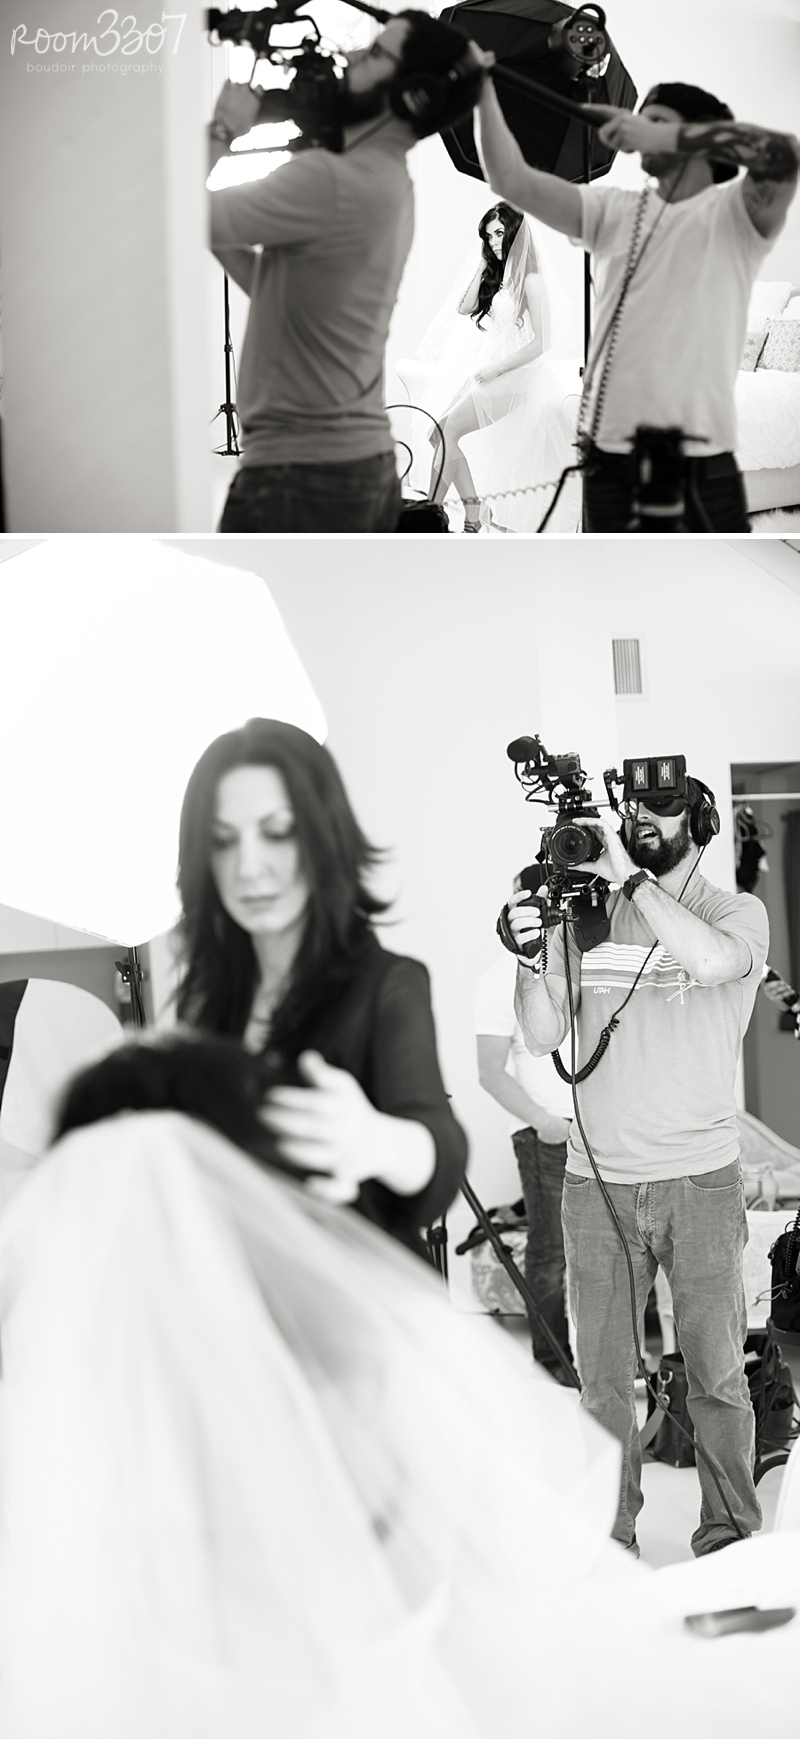 Behind the scenes of our Room 3307 promo video shoot by Lucky Lemon Films in Tampa, Florida